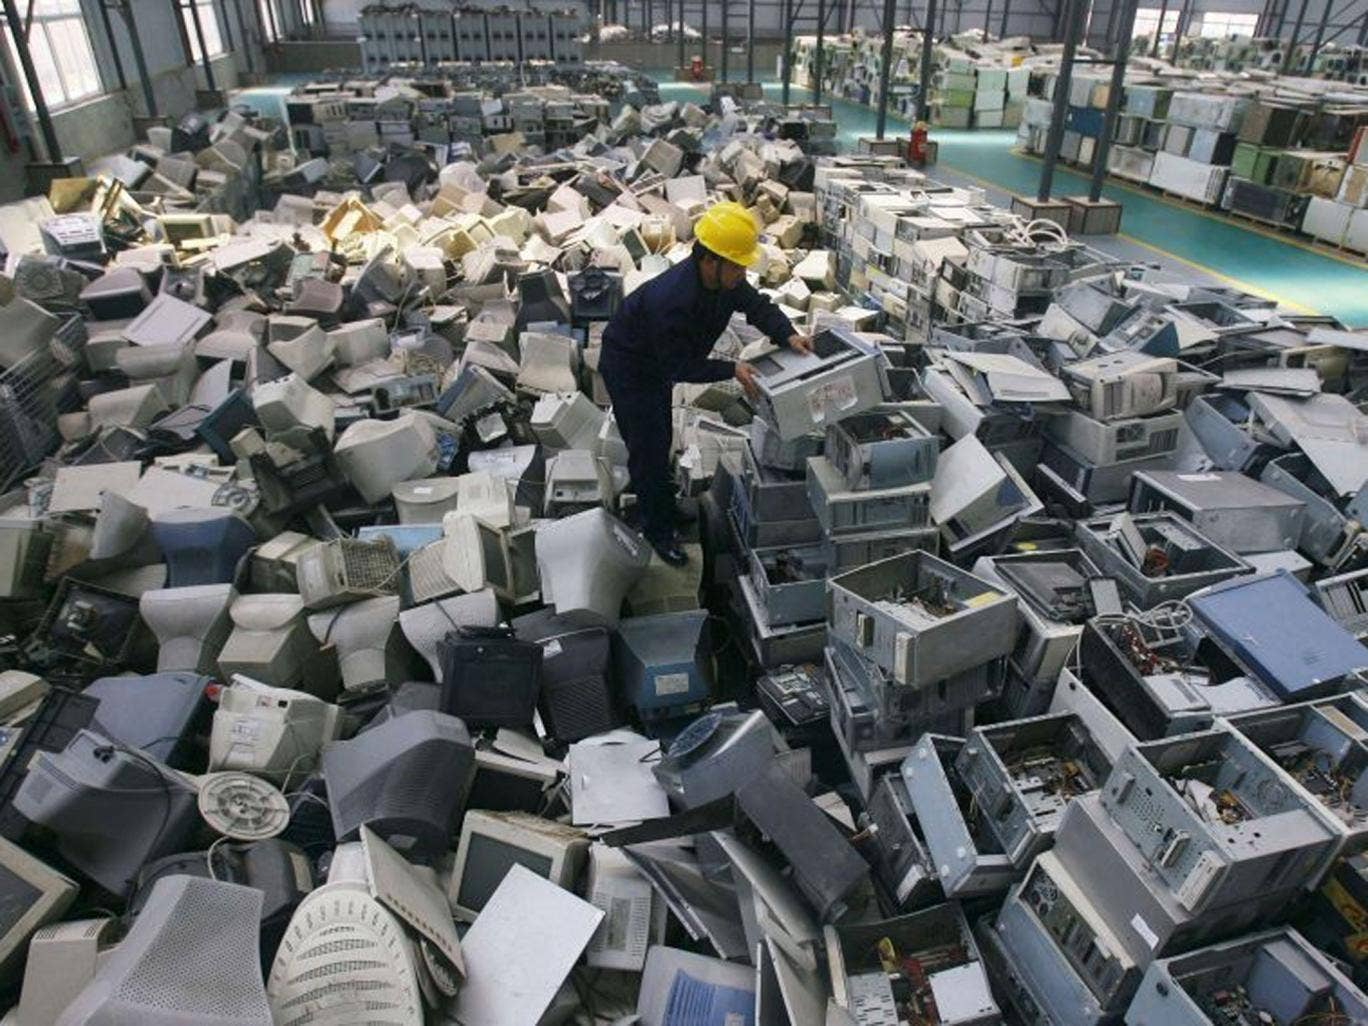 West's exports: Old computers wait to be recycled in China